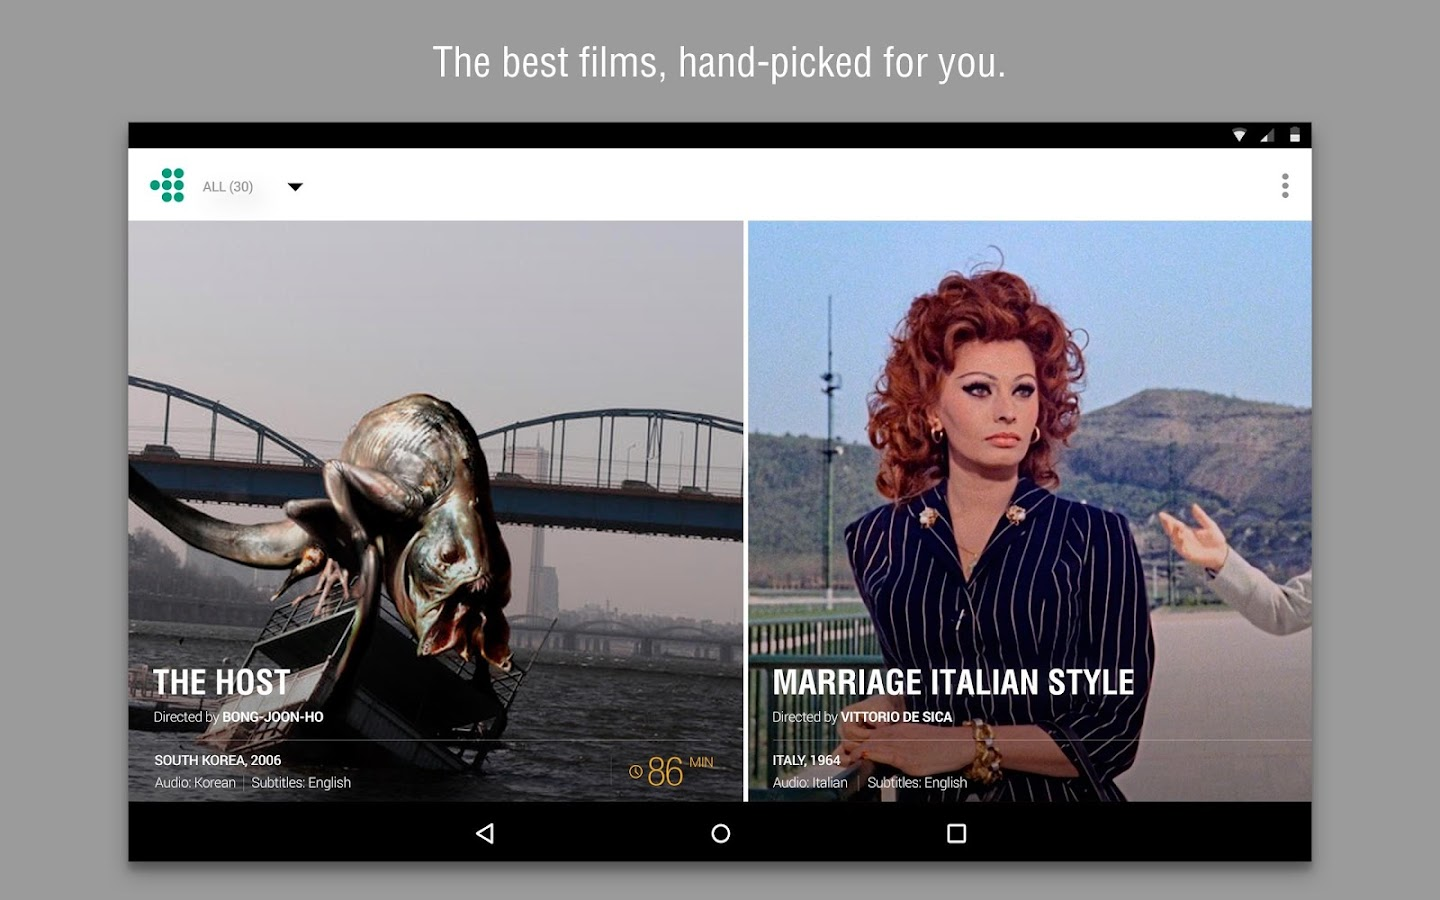 Phone Download Free Full Movies For Android Phones mubi stream download films android apps on google play screenshot